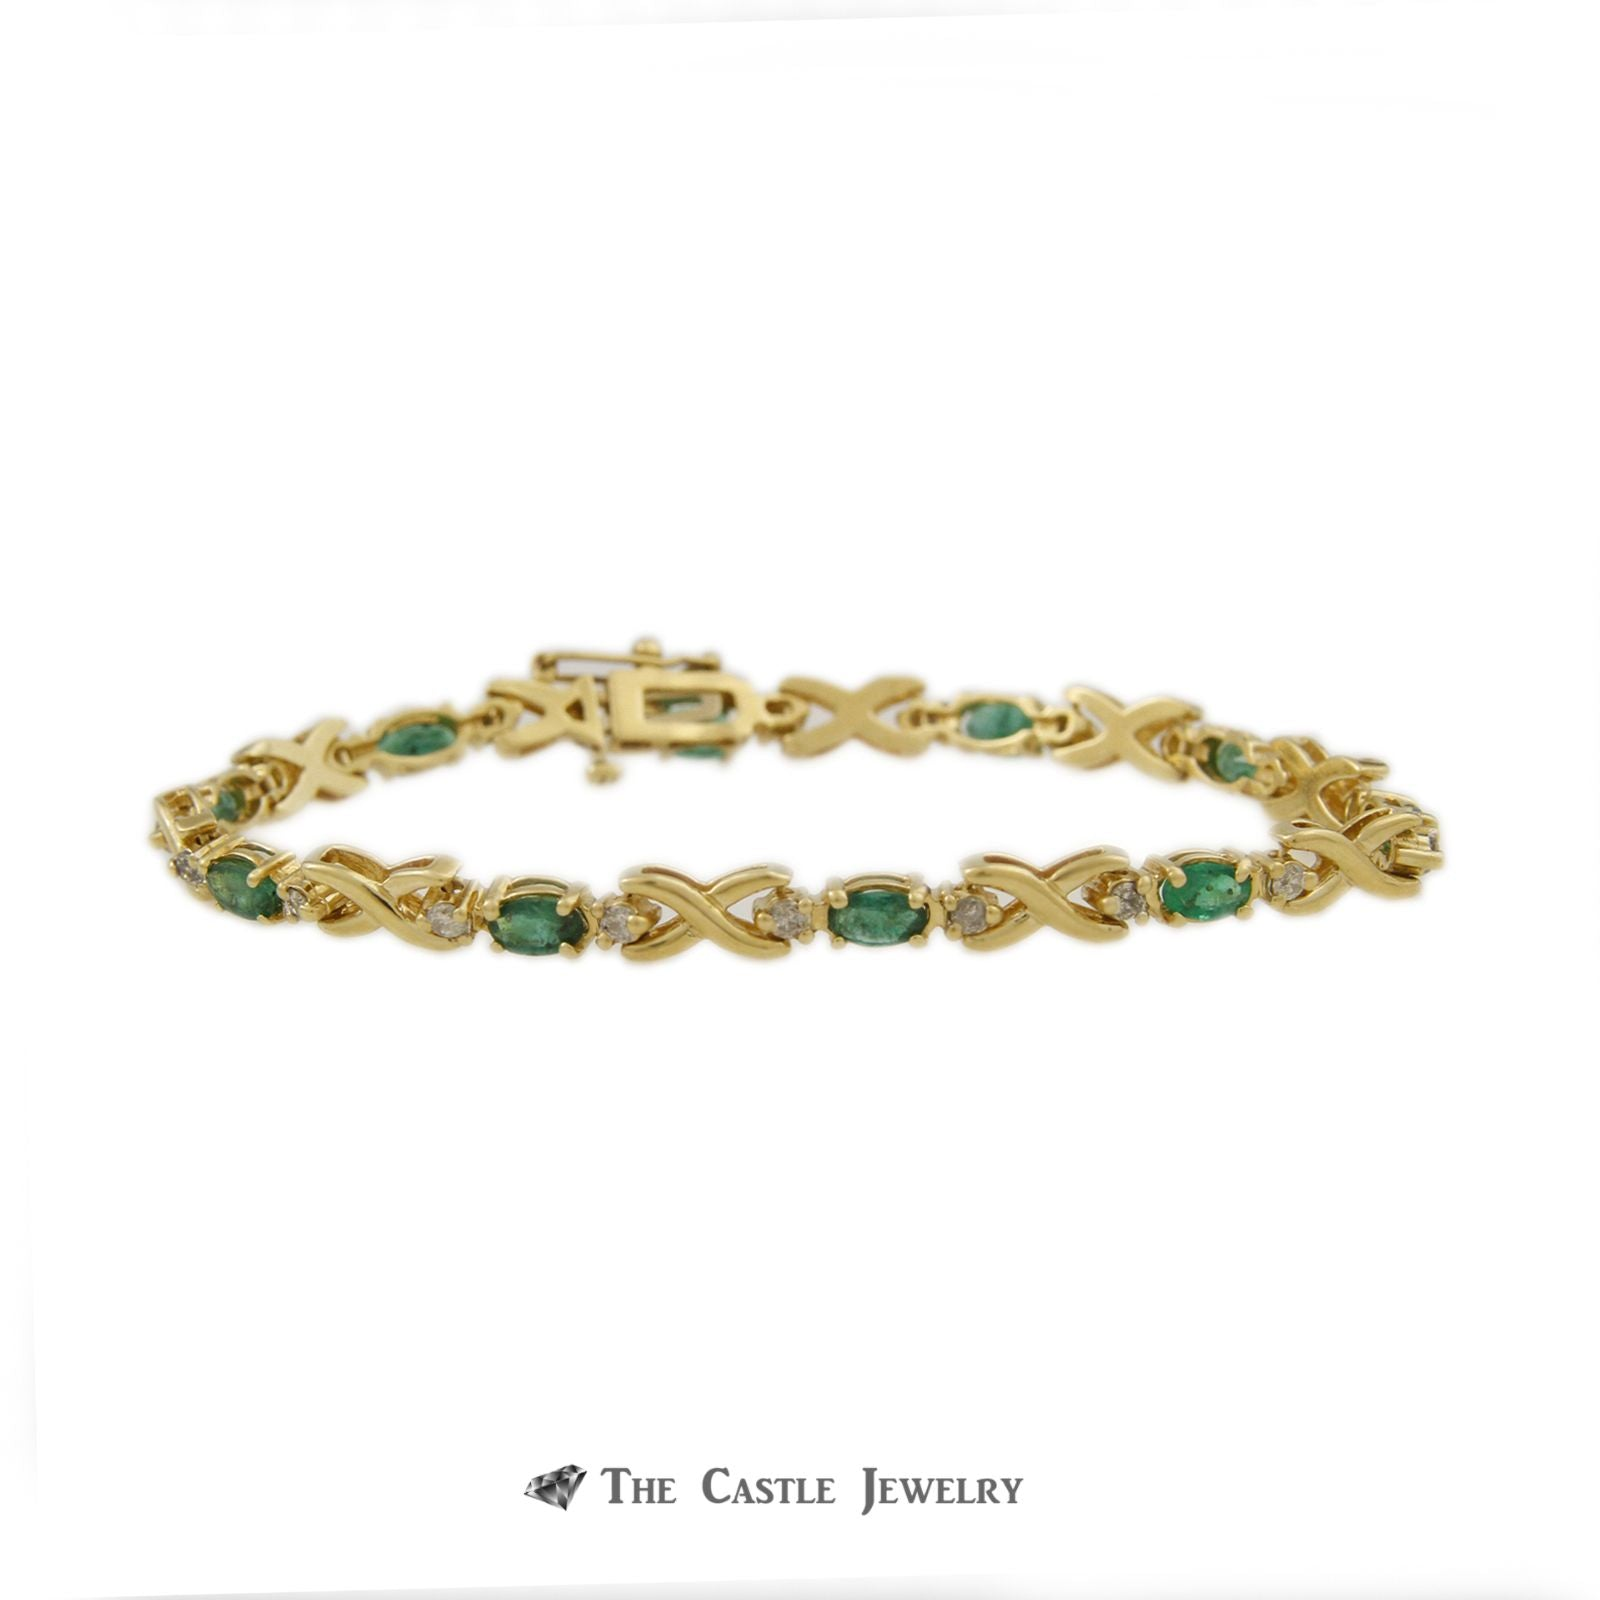 Oval Emerald Bracelet with X Links & Diamond Accents in 14K Yellow Gold